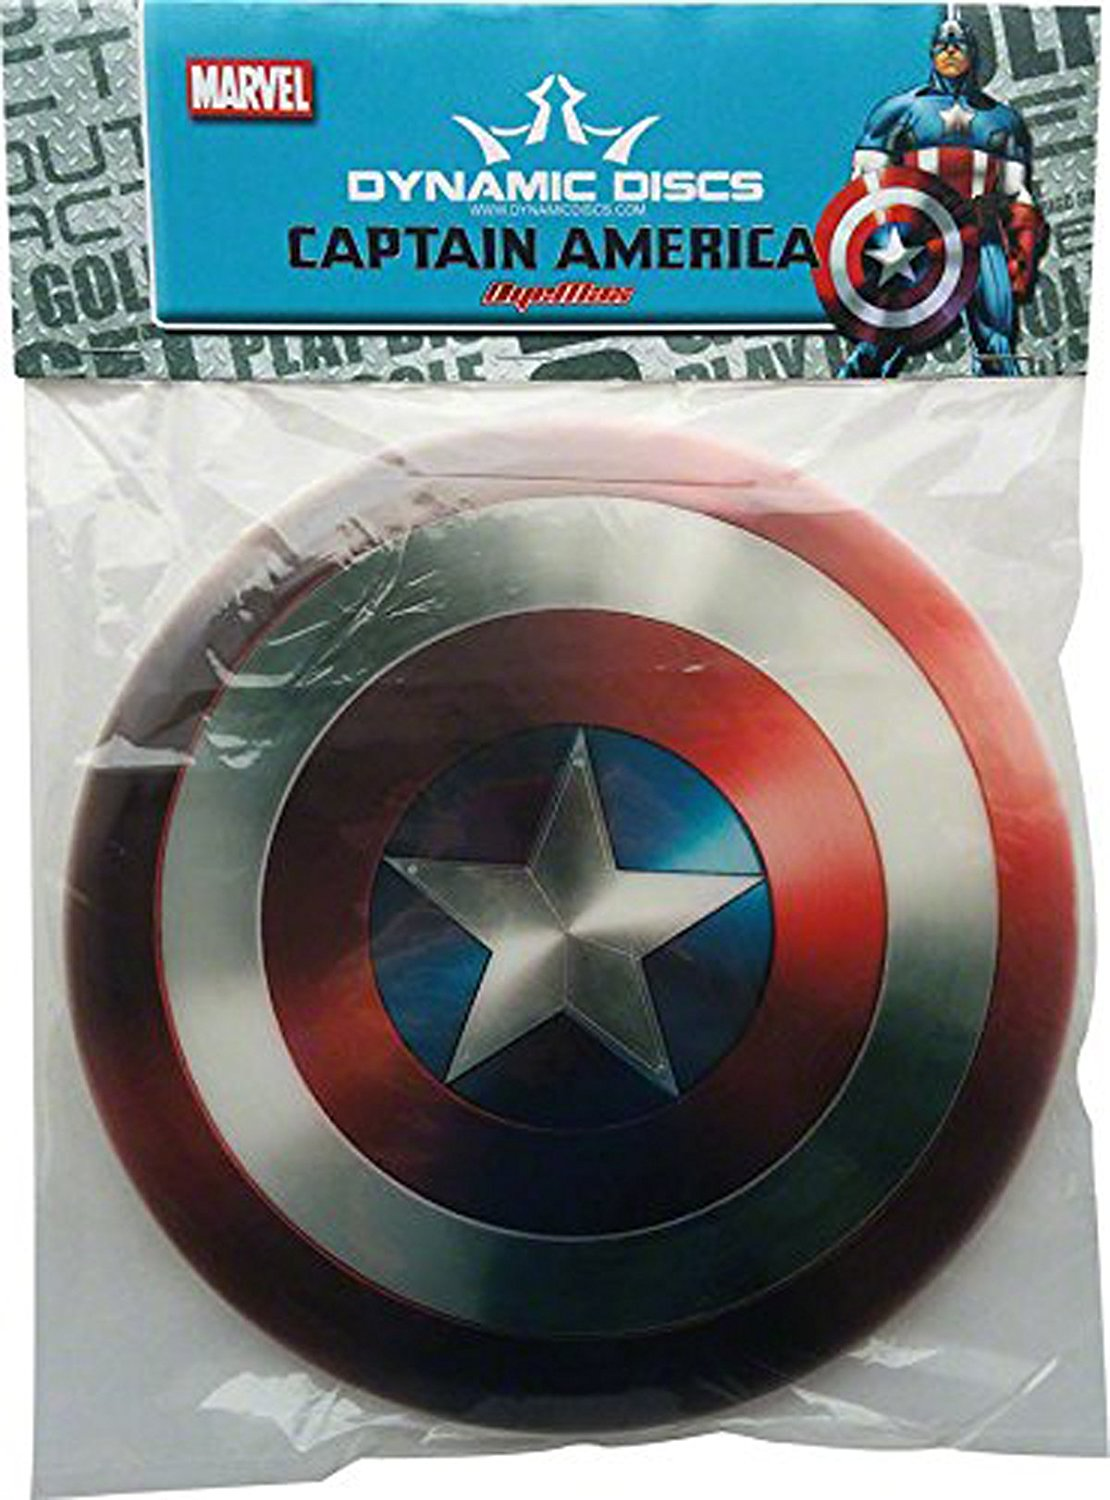 Captain America Golf Disc: Fairway Driver..., By Dynamic Discs Ship from US by